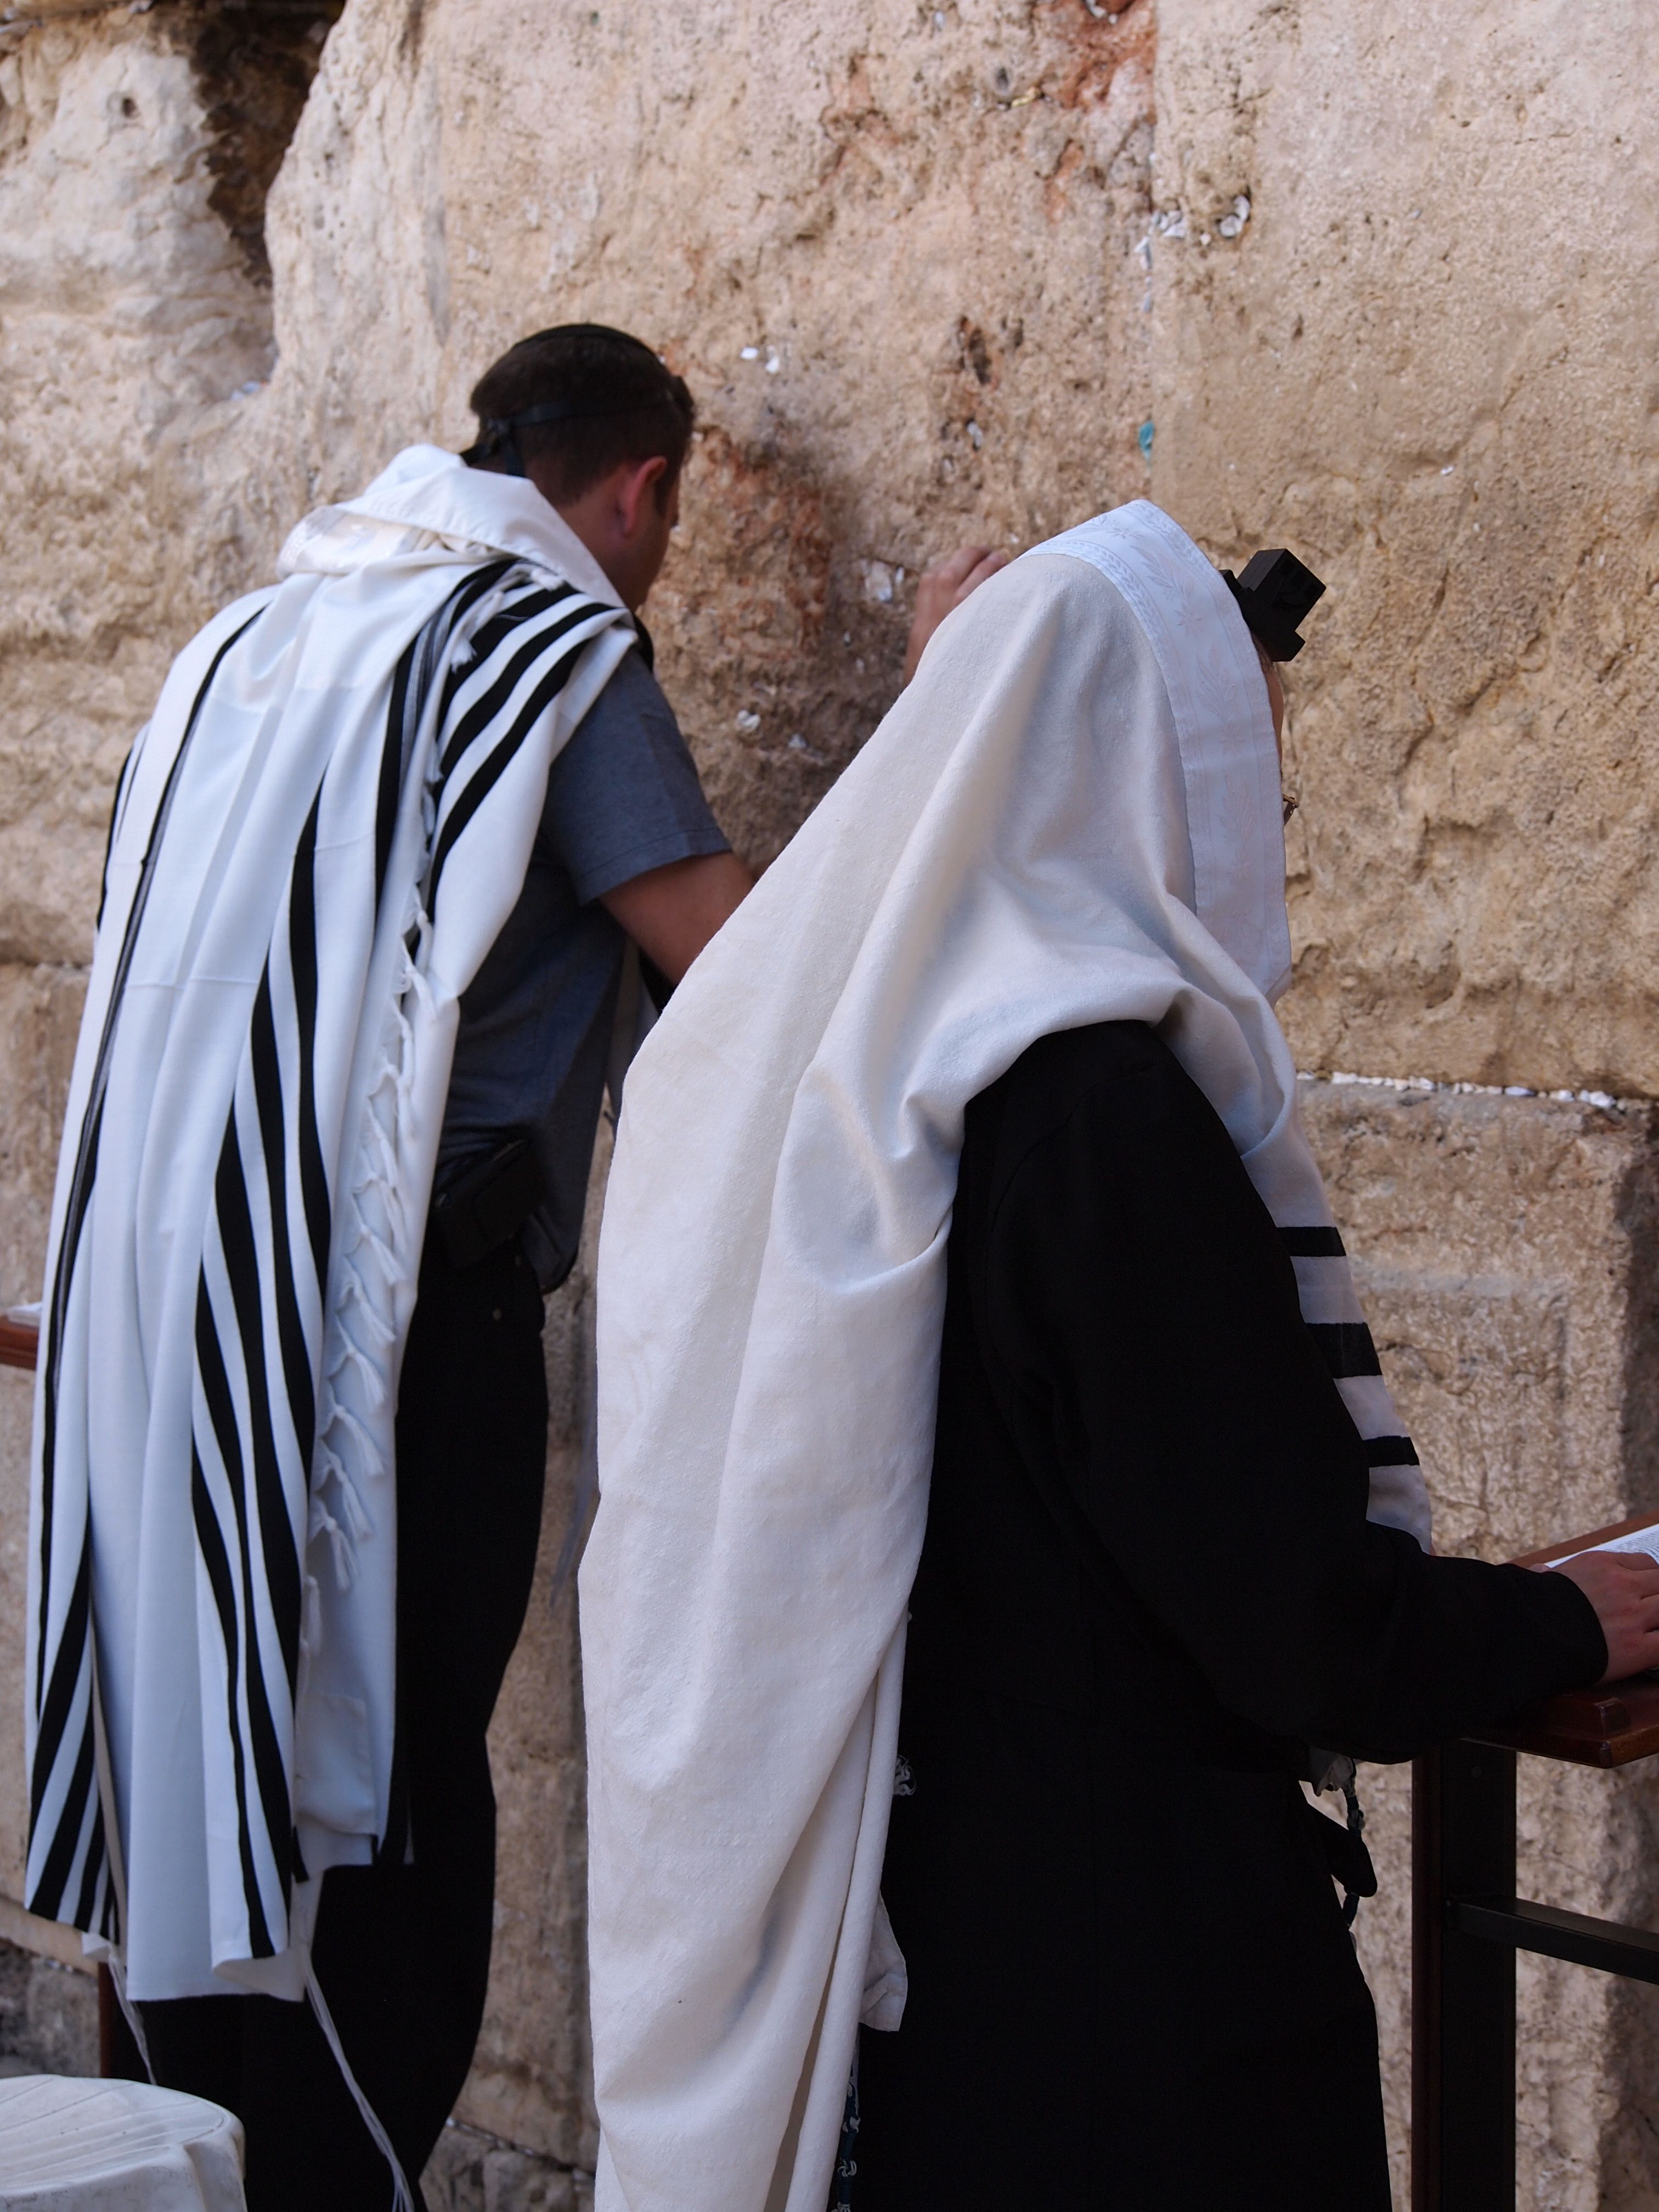 In prayer at the Western Wall in Jerusalem.